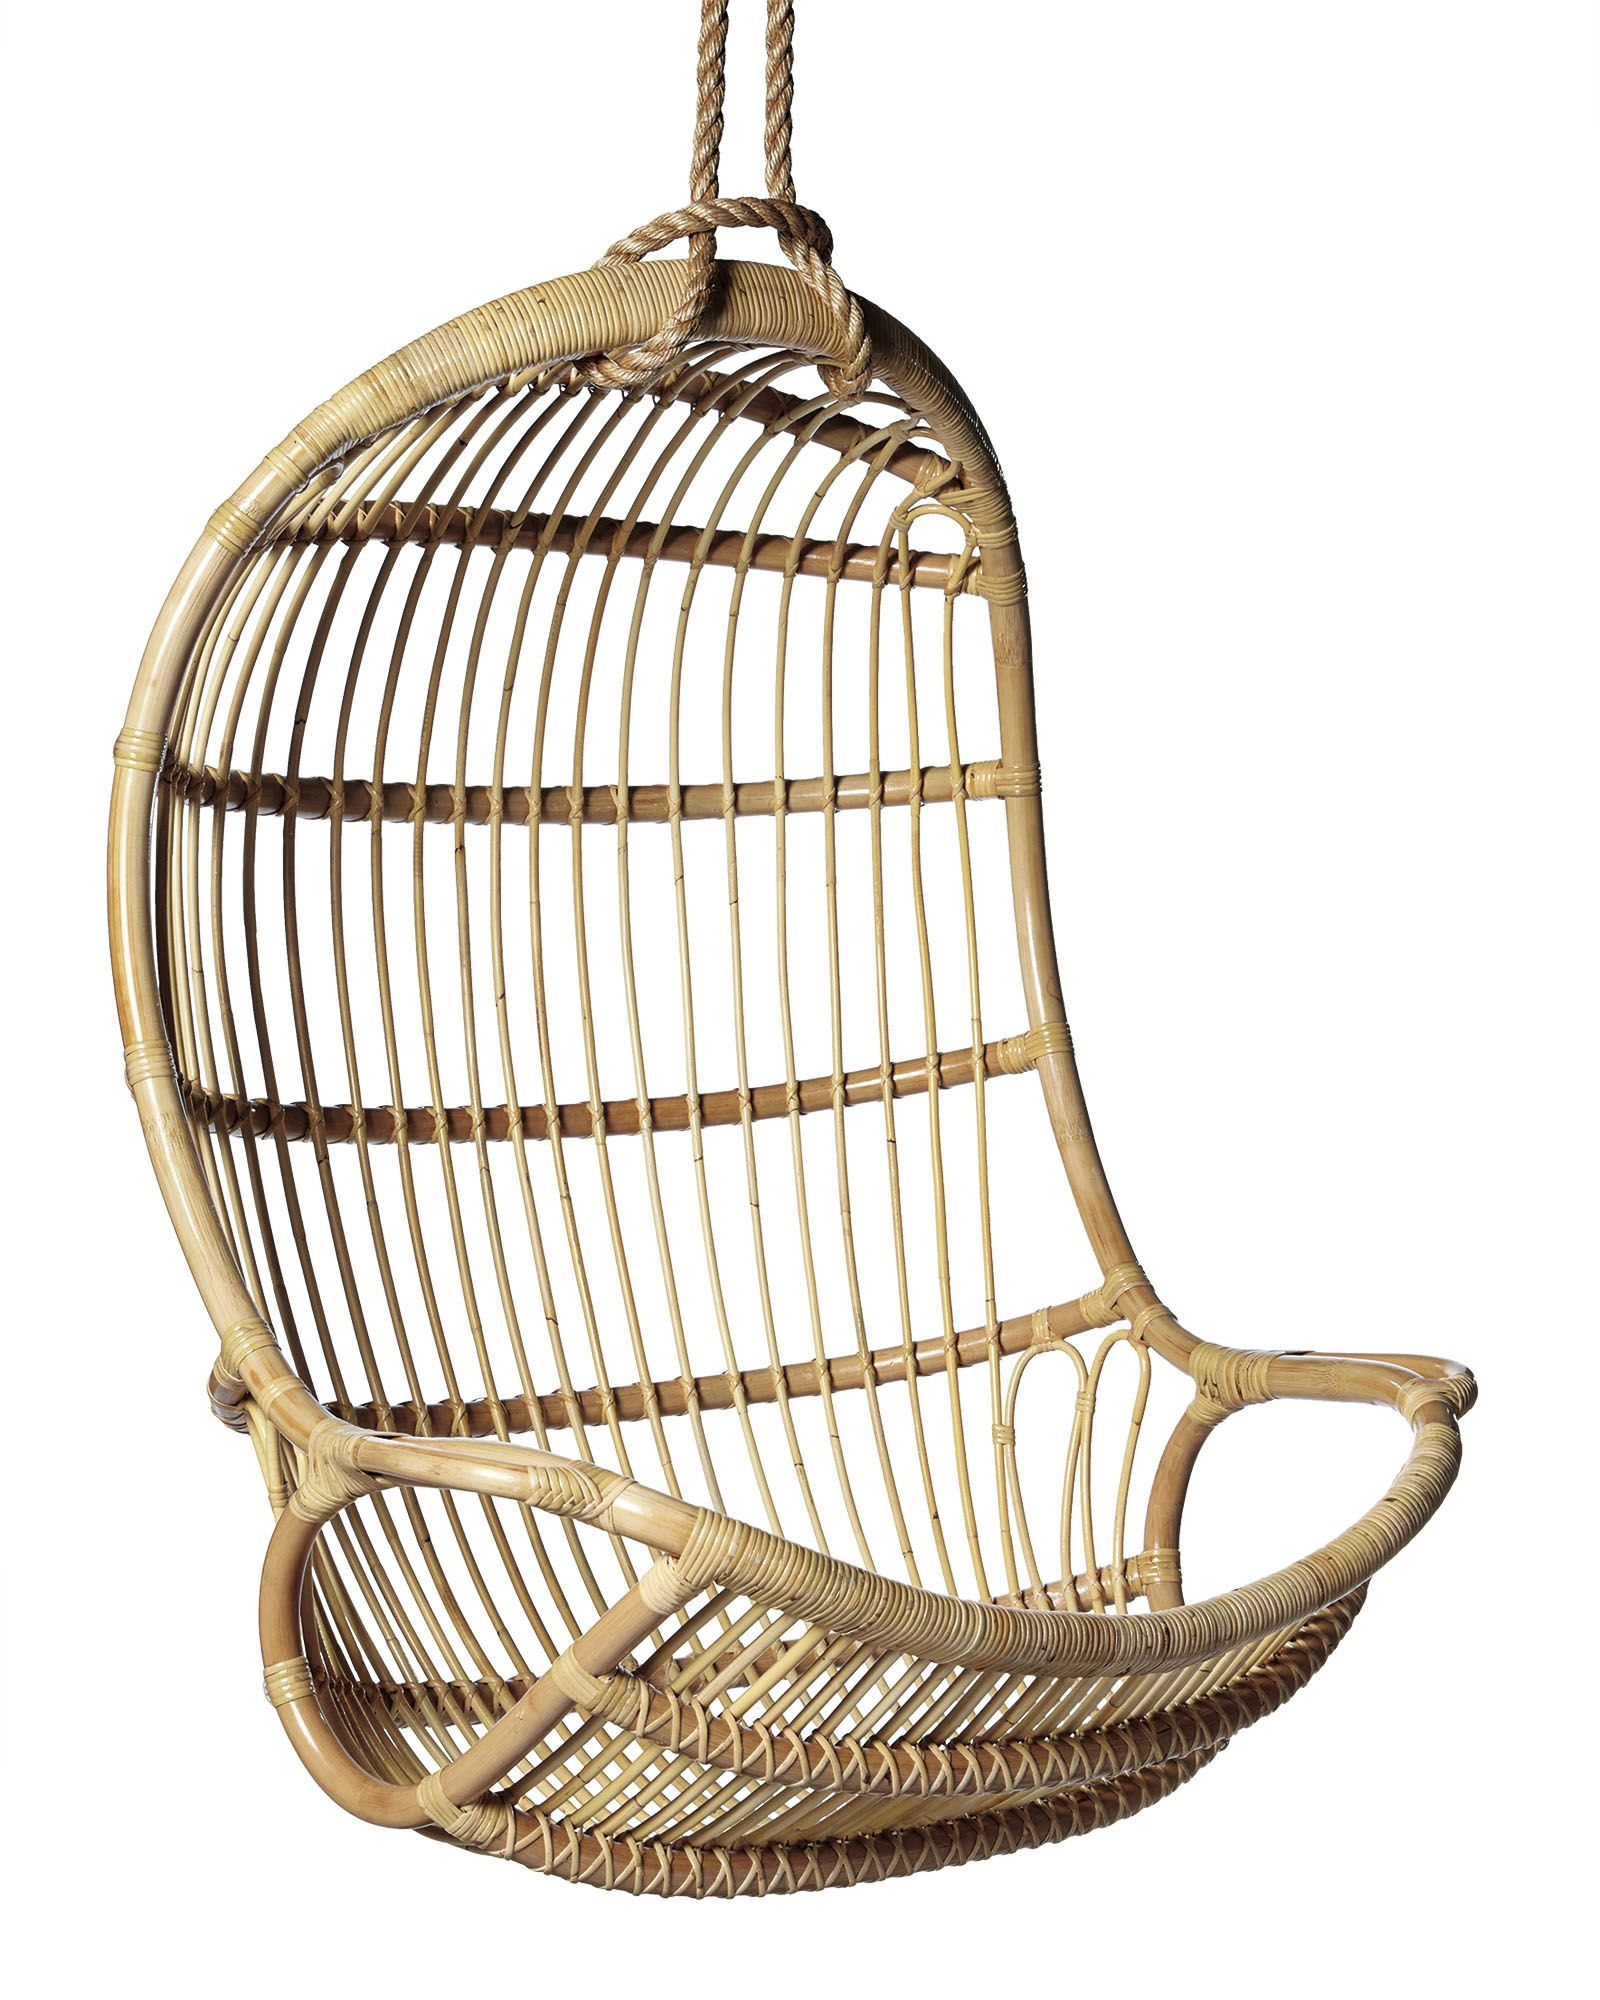 Hanging Rattan Chair in 2019  Outdoor  Swinging chair